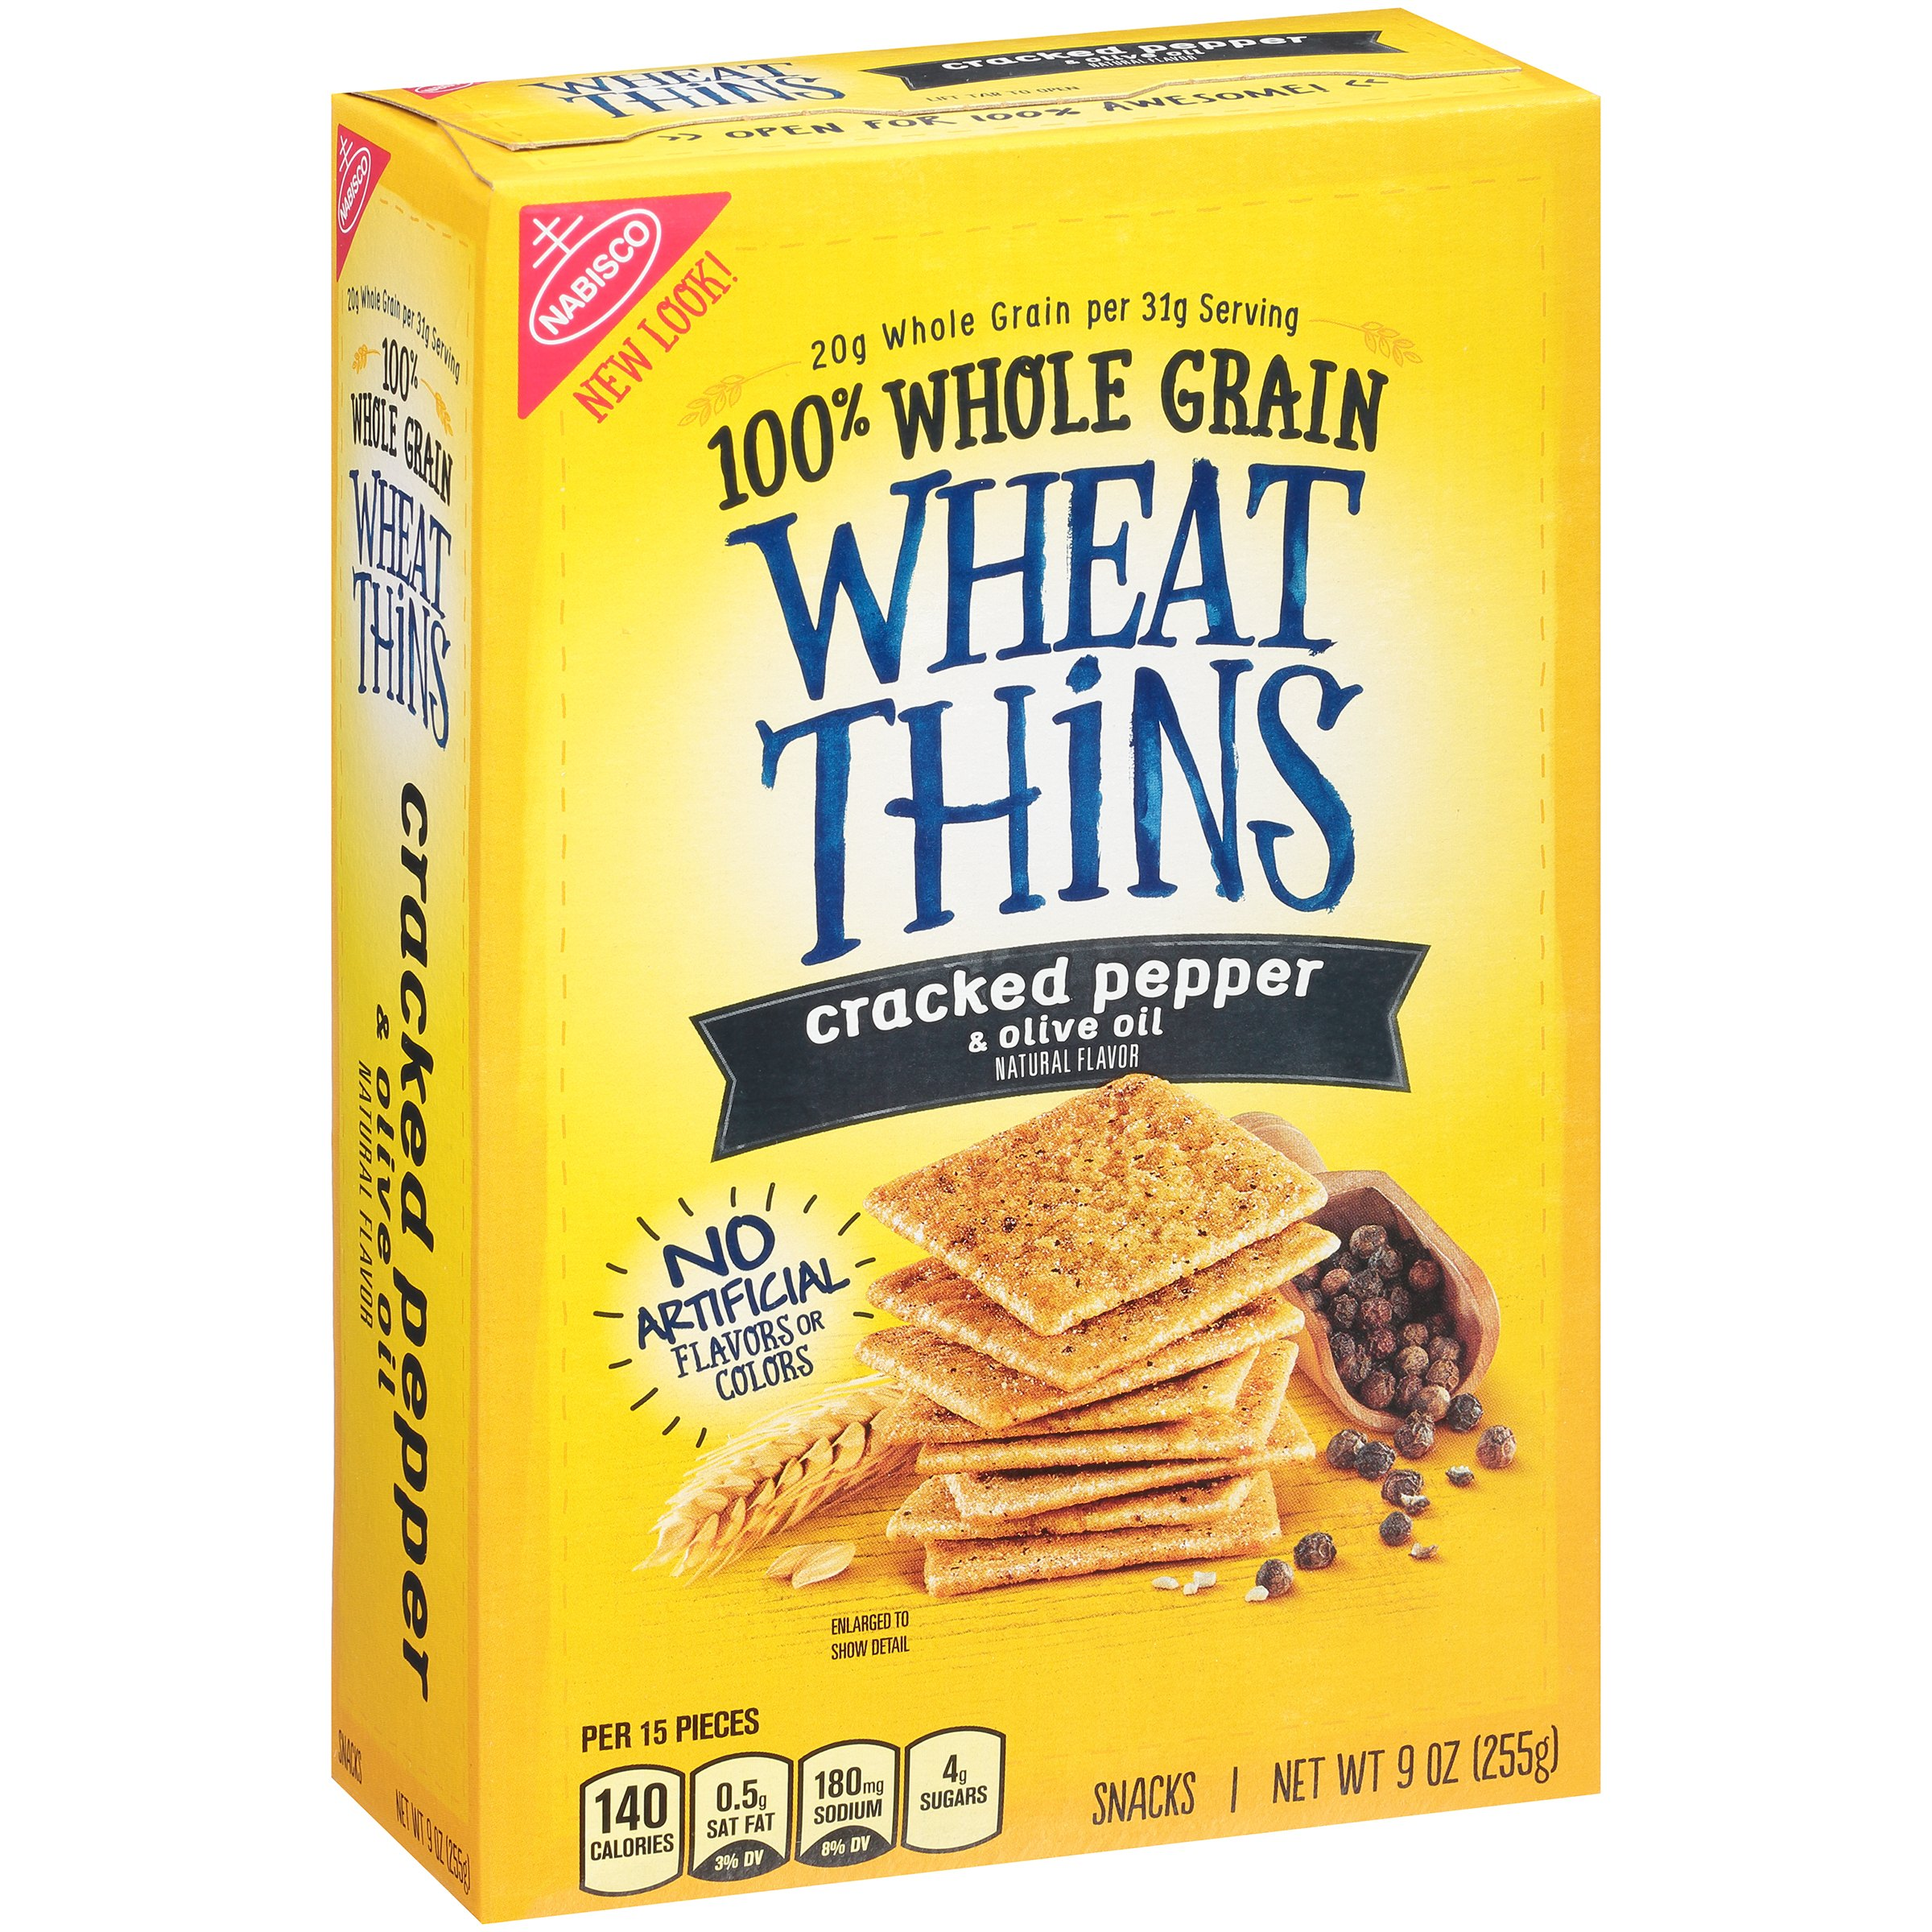 (2 Pack) Nabisco Wheat Thins Cracked Pepper & Olive Oil Snacks 9 oz. Box